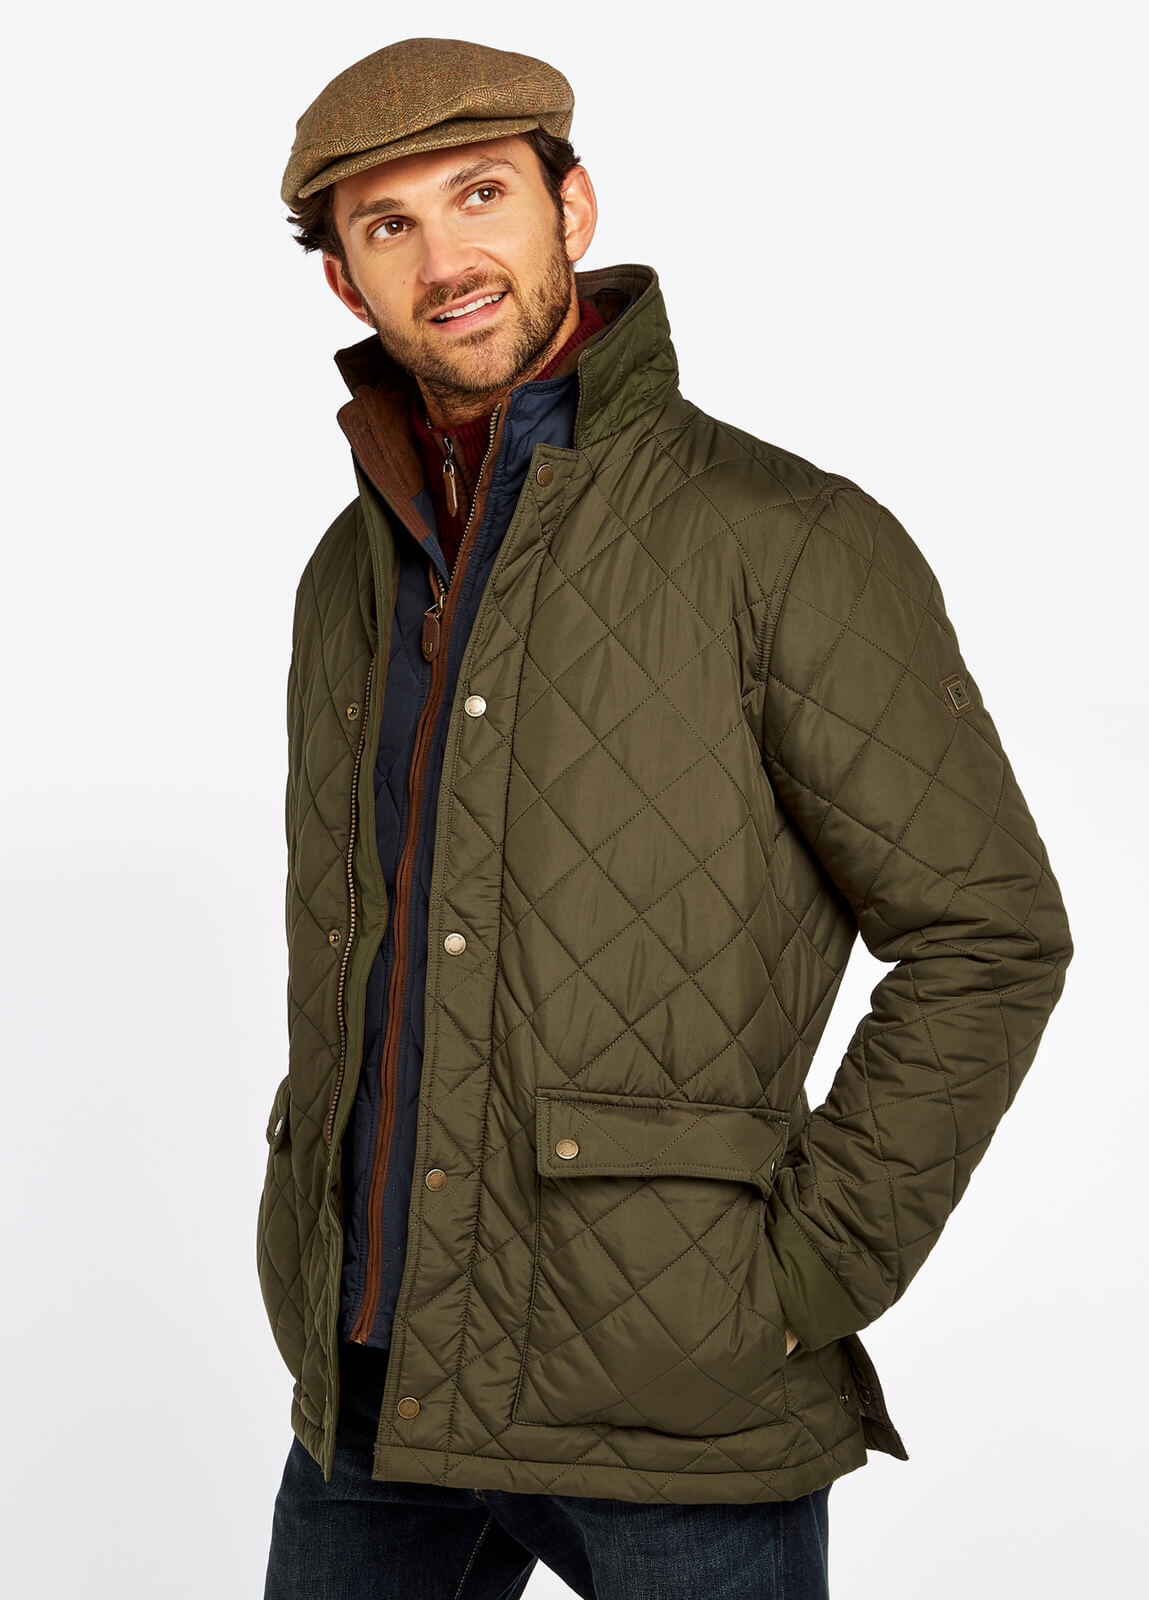 Adare_Quilted_Jacket_Olive_on_model